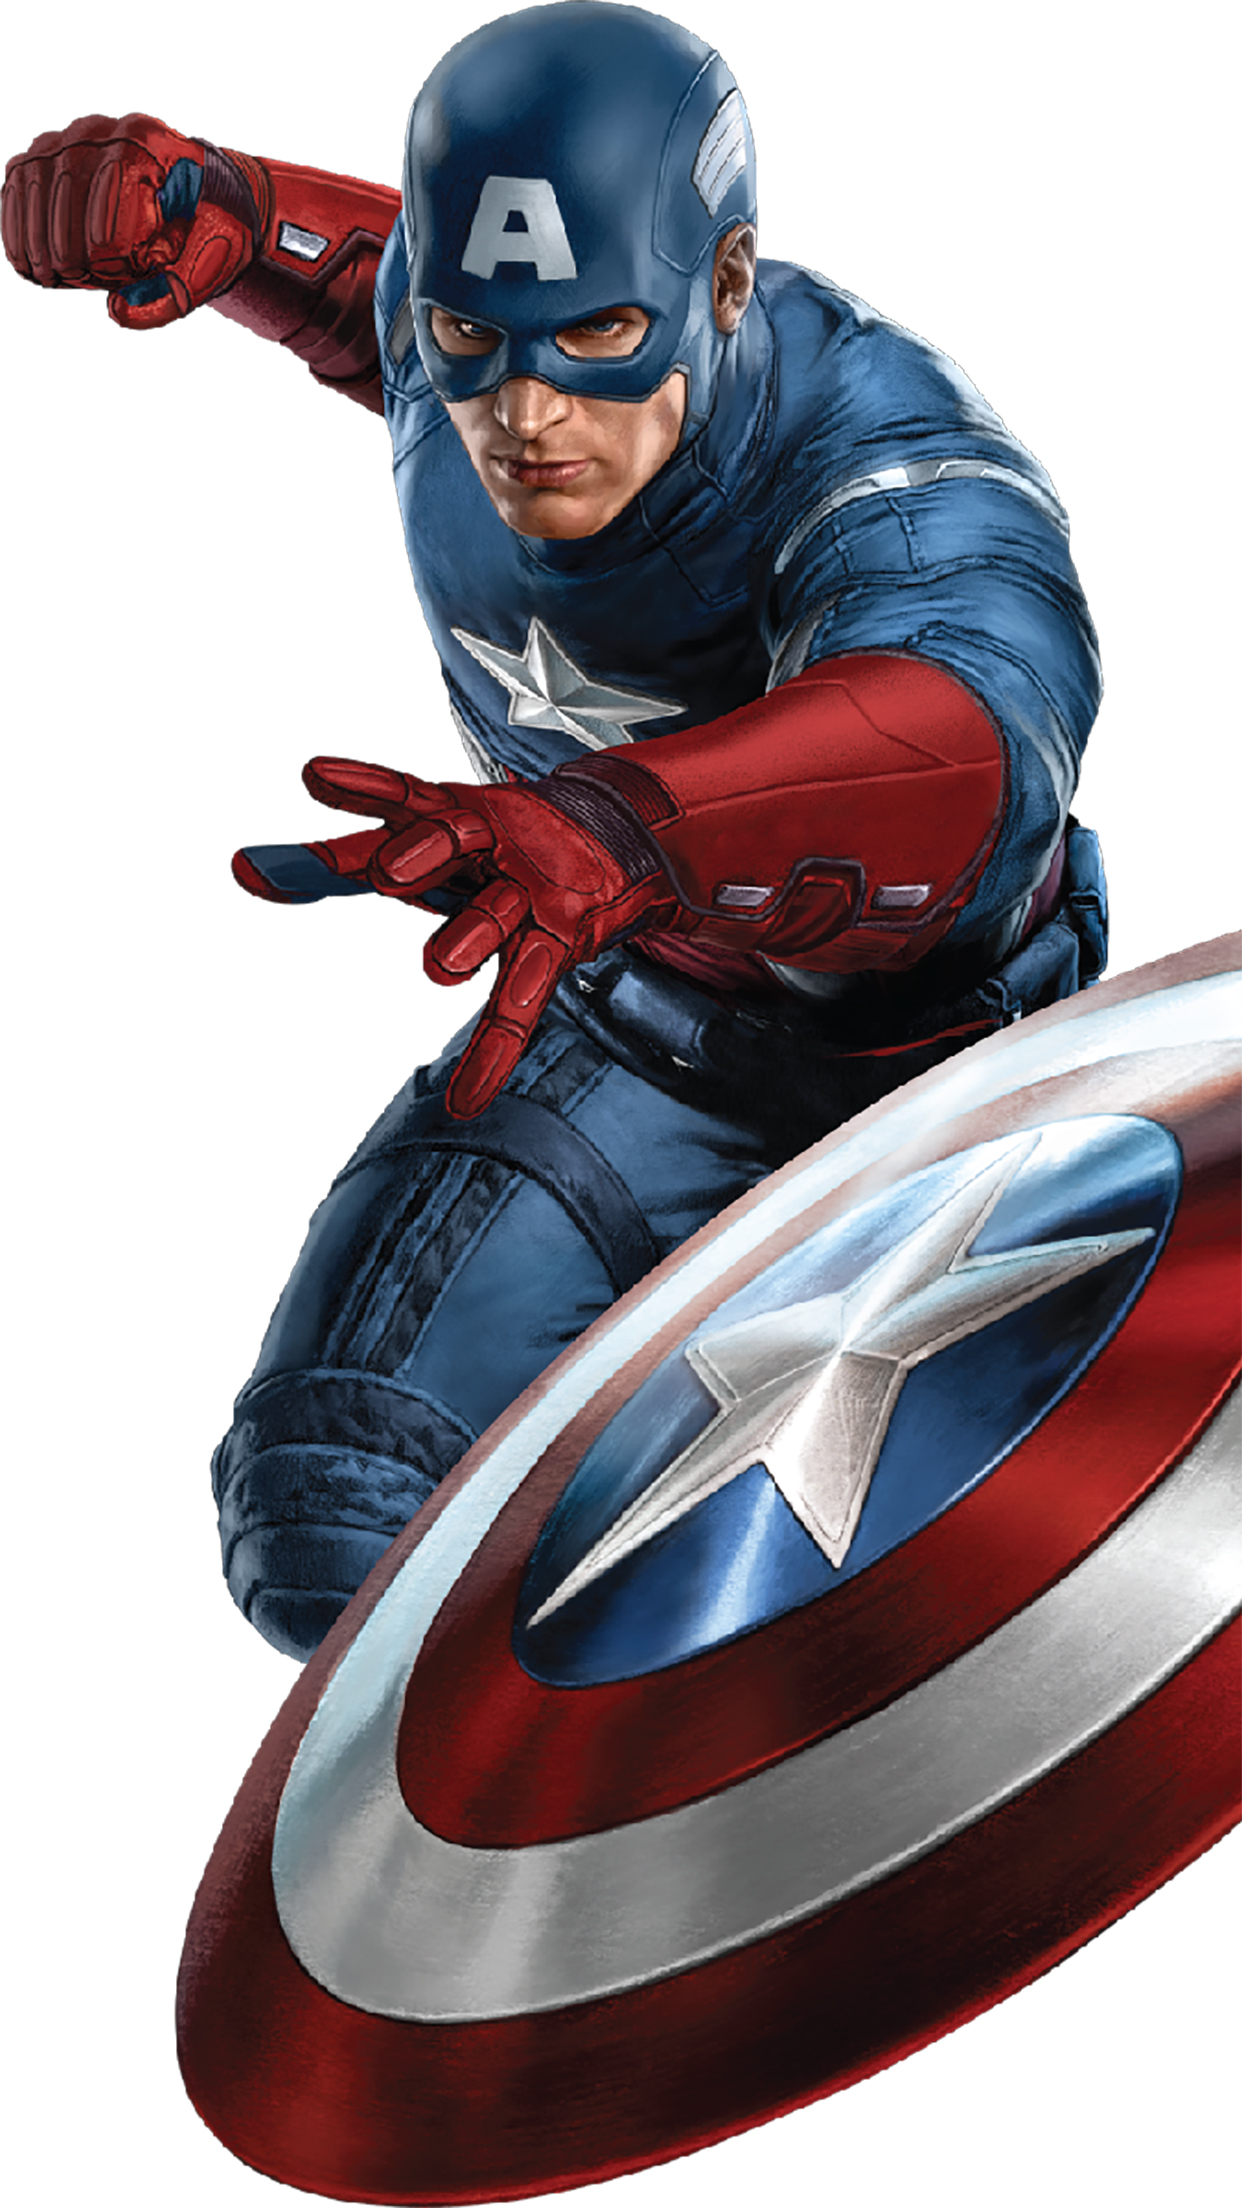 Captain America Fight Wallpaper For Iphone X 8 7 6